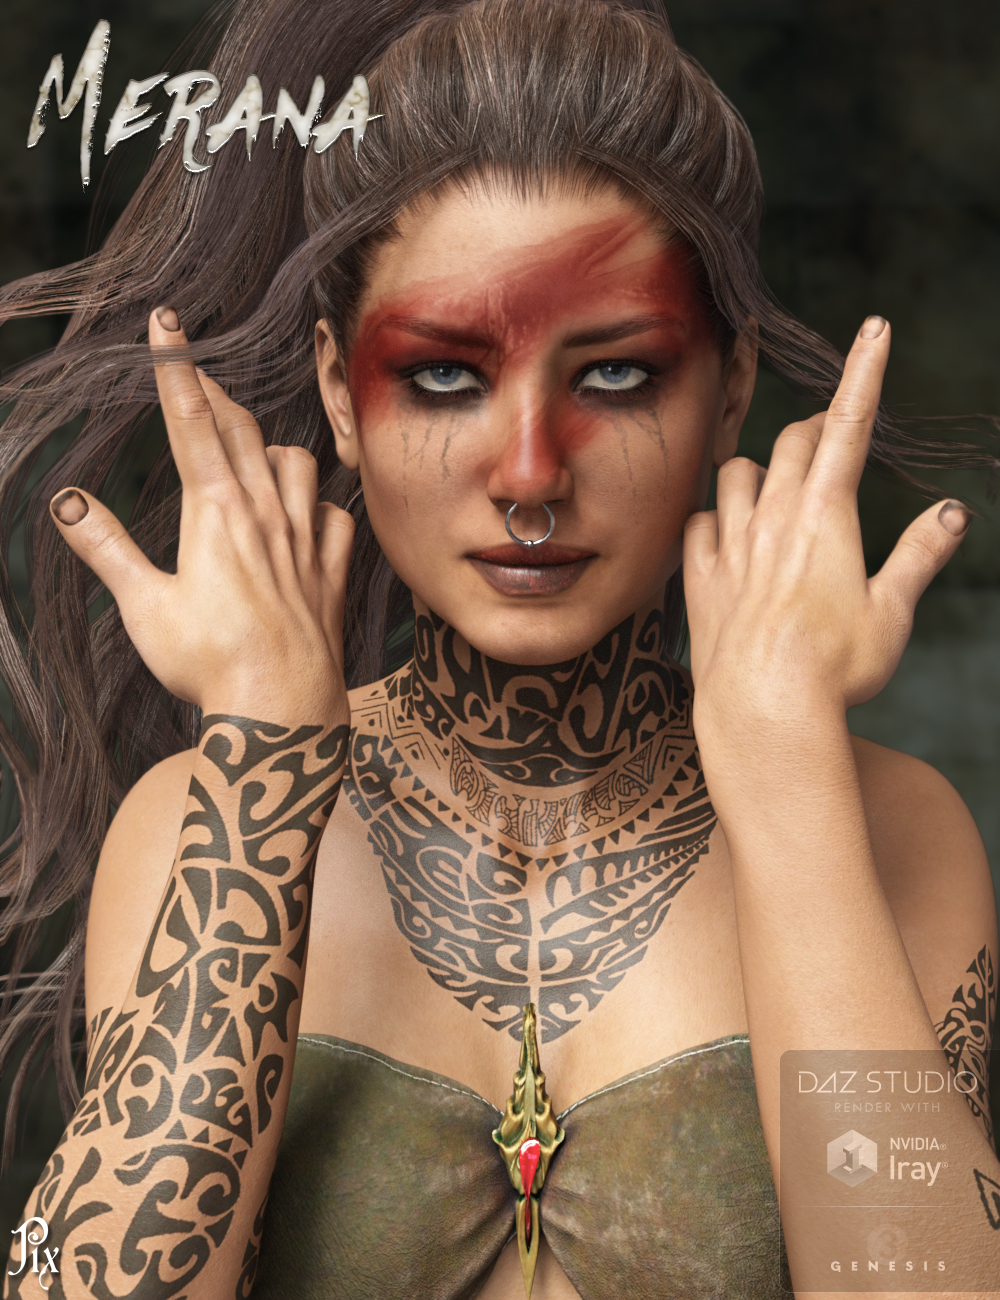 Pix Merana for Genesis 3 Female by: Pixelunashadownet, 3D Models by Daz 3D